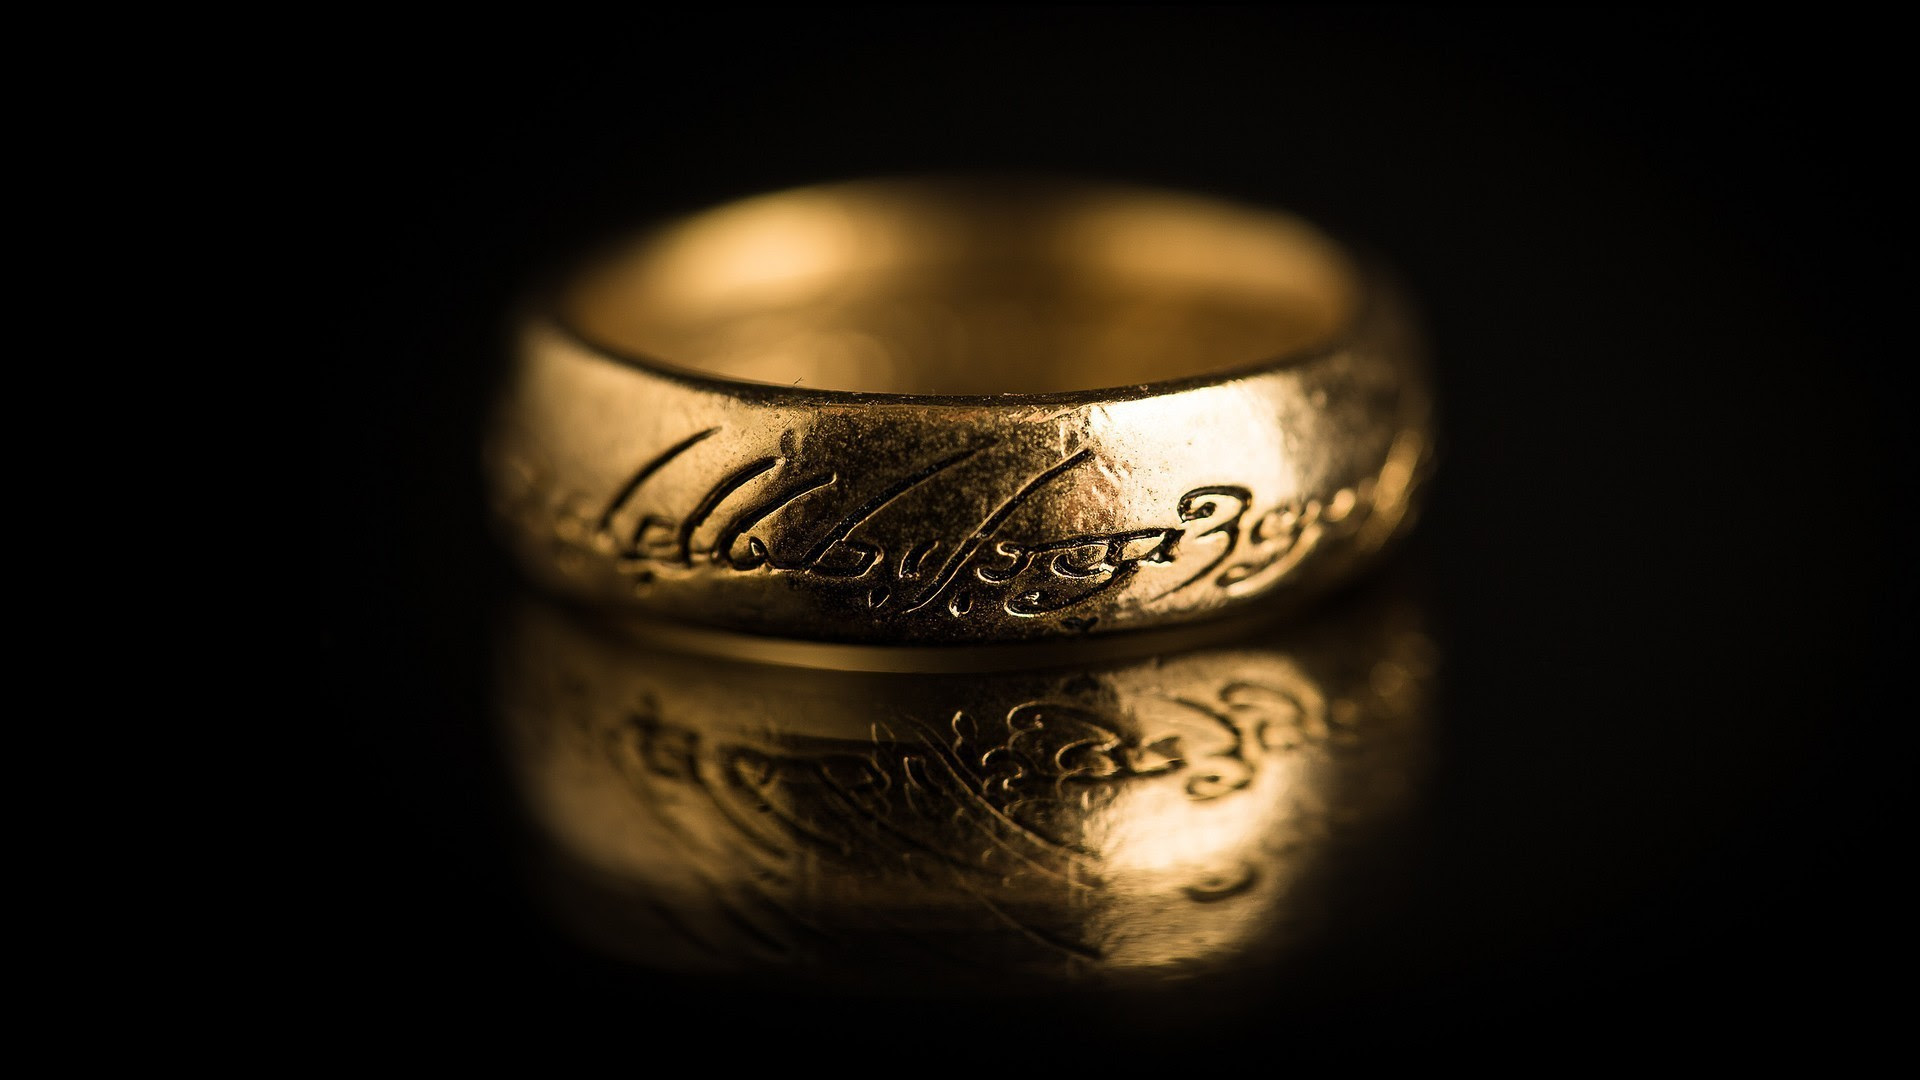 The Lord Of The Rings, Rings, Reflection, Black Background, Depth Of Field, The One Ring